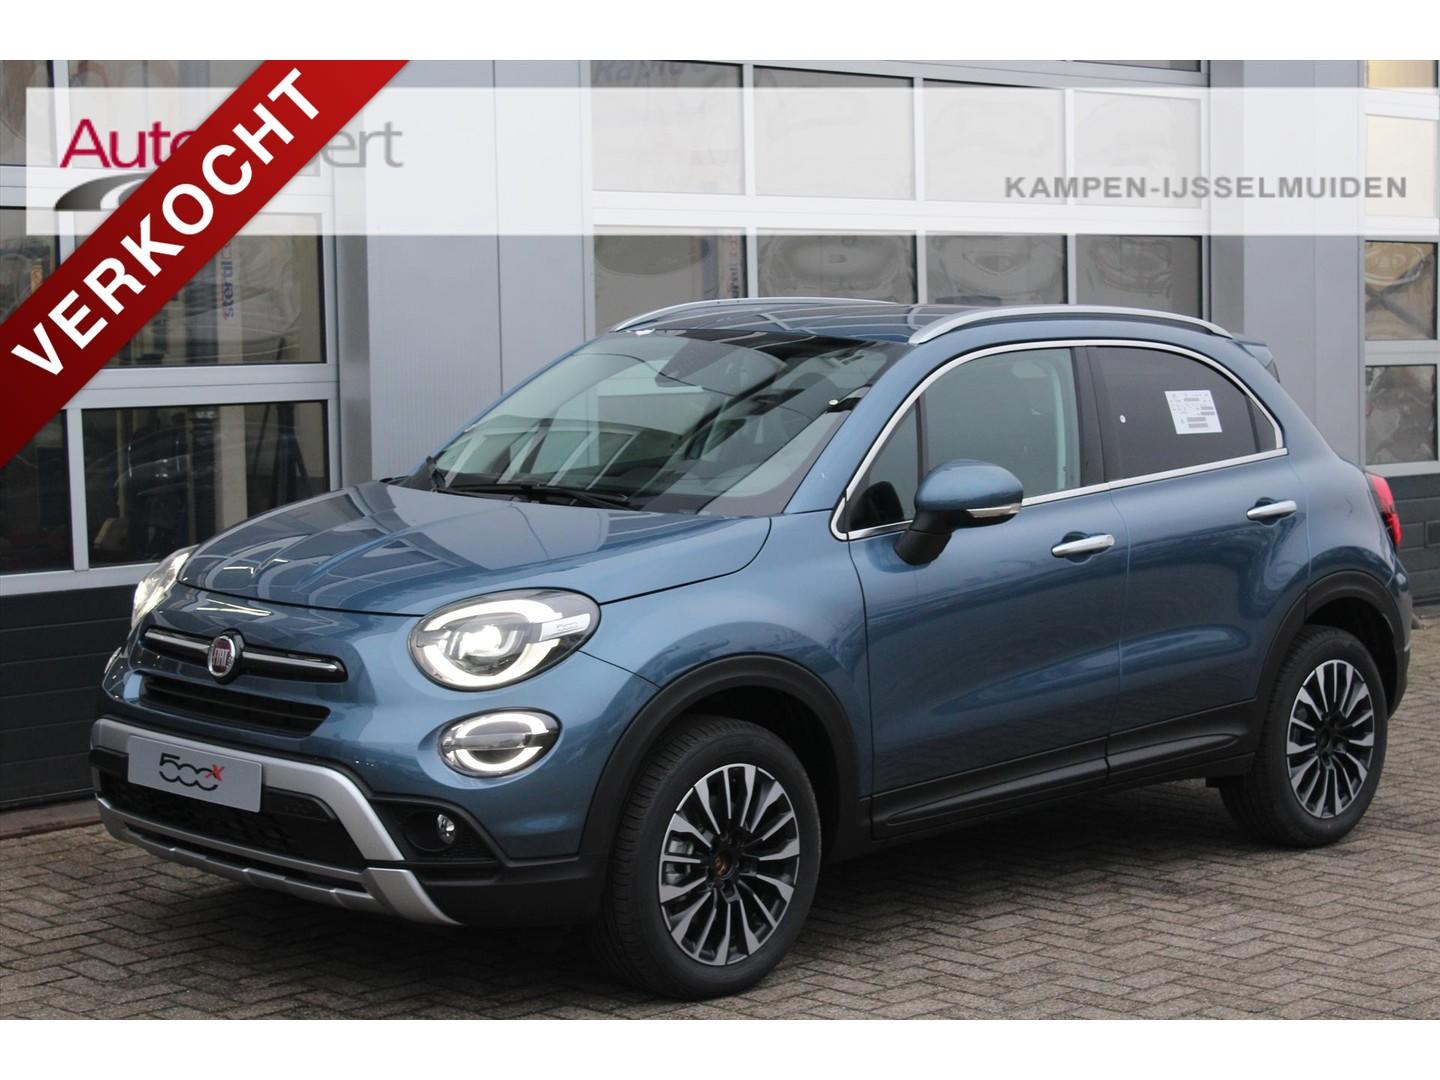 Fiat 500x City cross opening edition 1.3 gse 150pk automaat